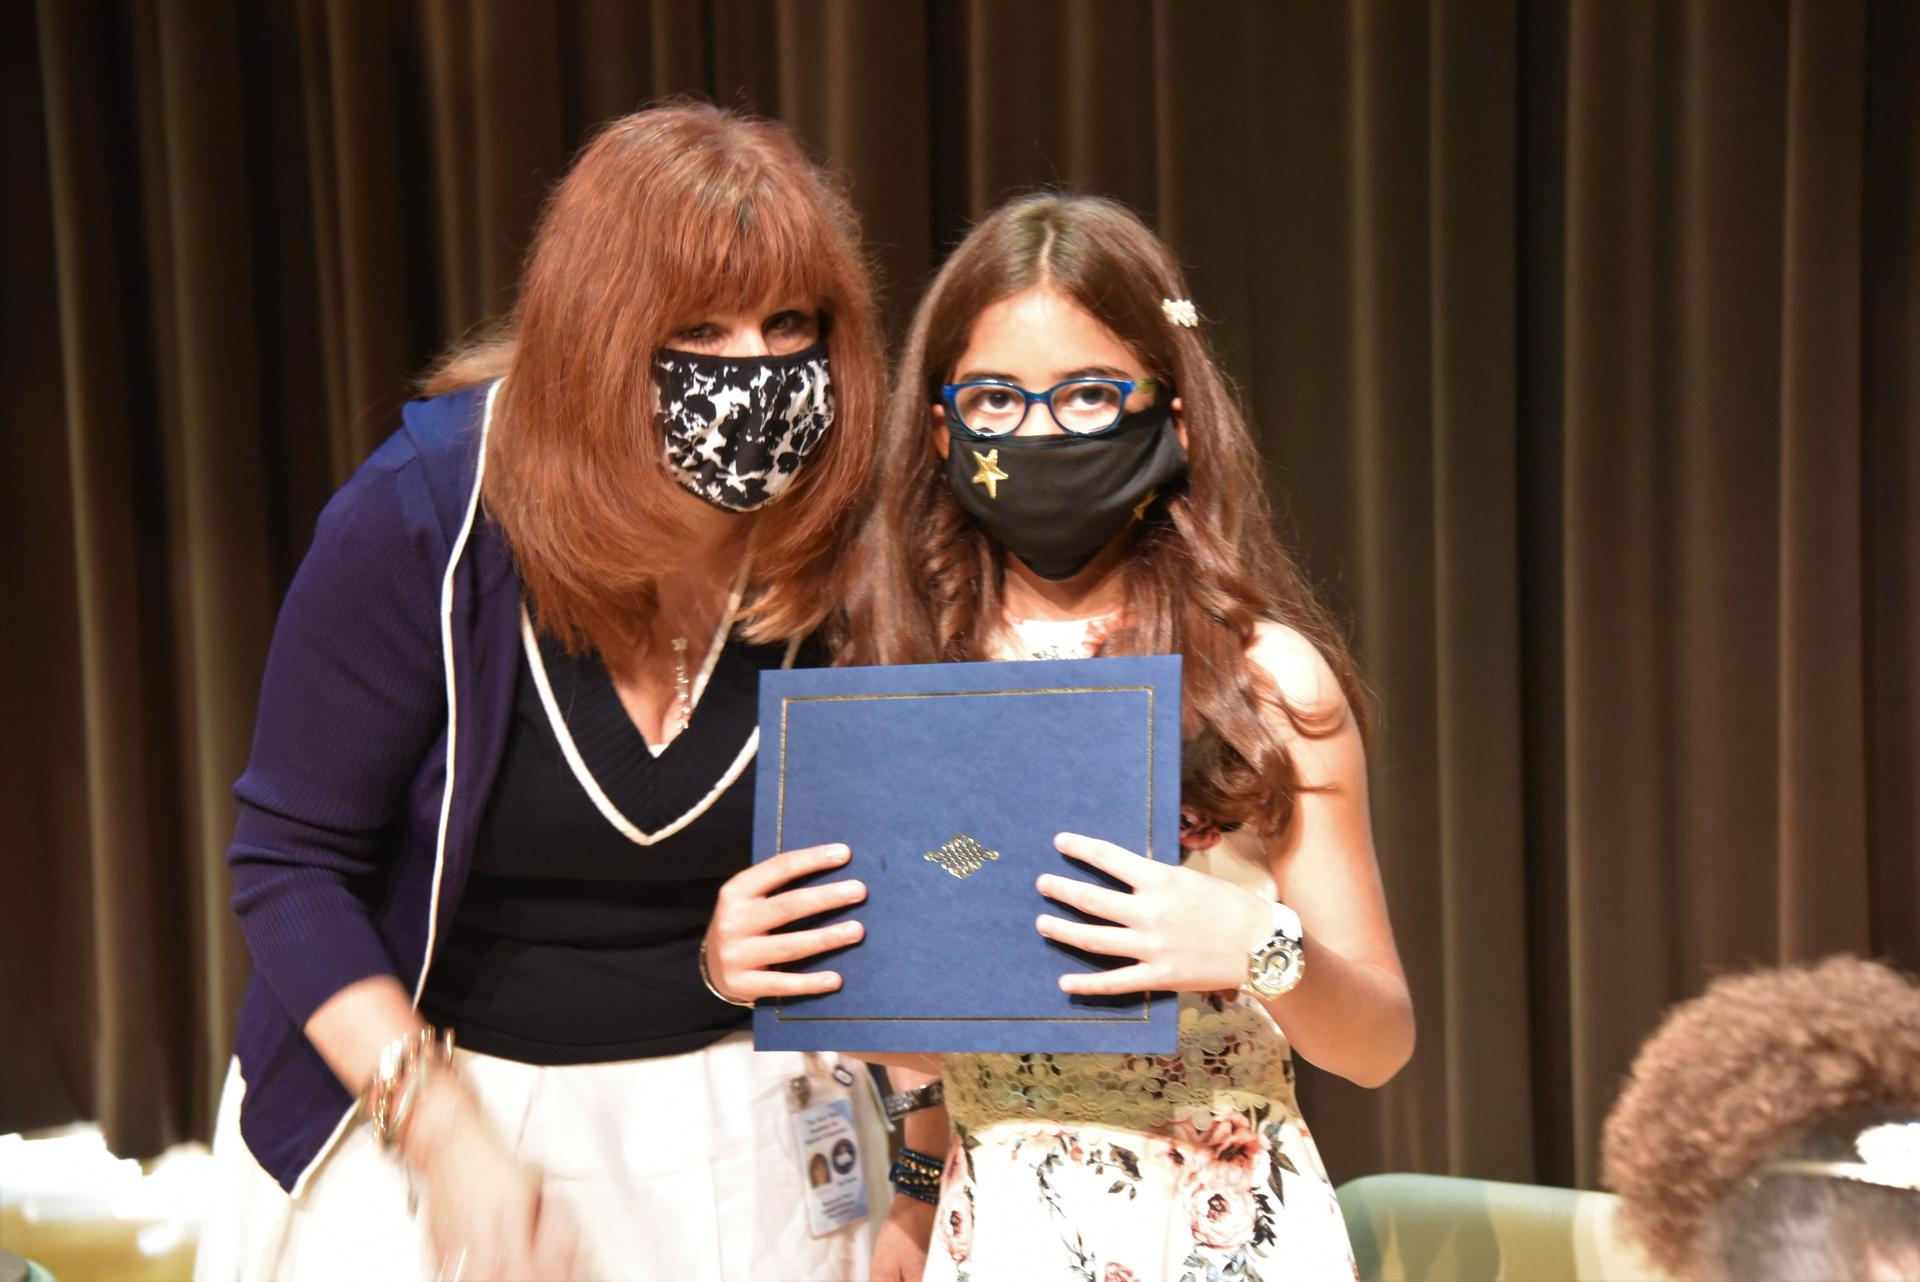 A teacher hands a student a diploma as they both pose for the photo